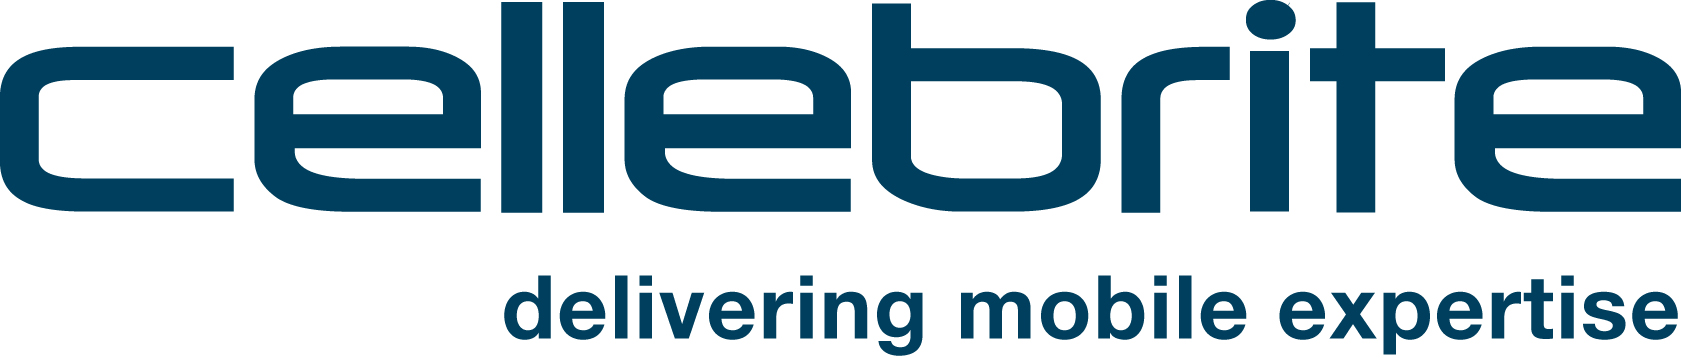 cellebrite-new-logo-large